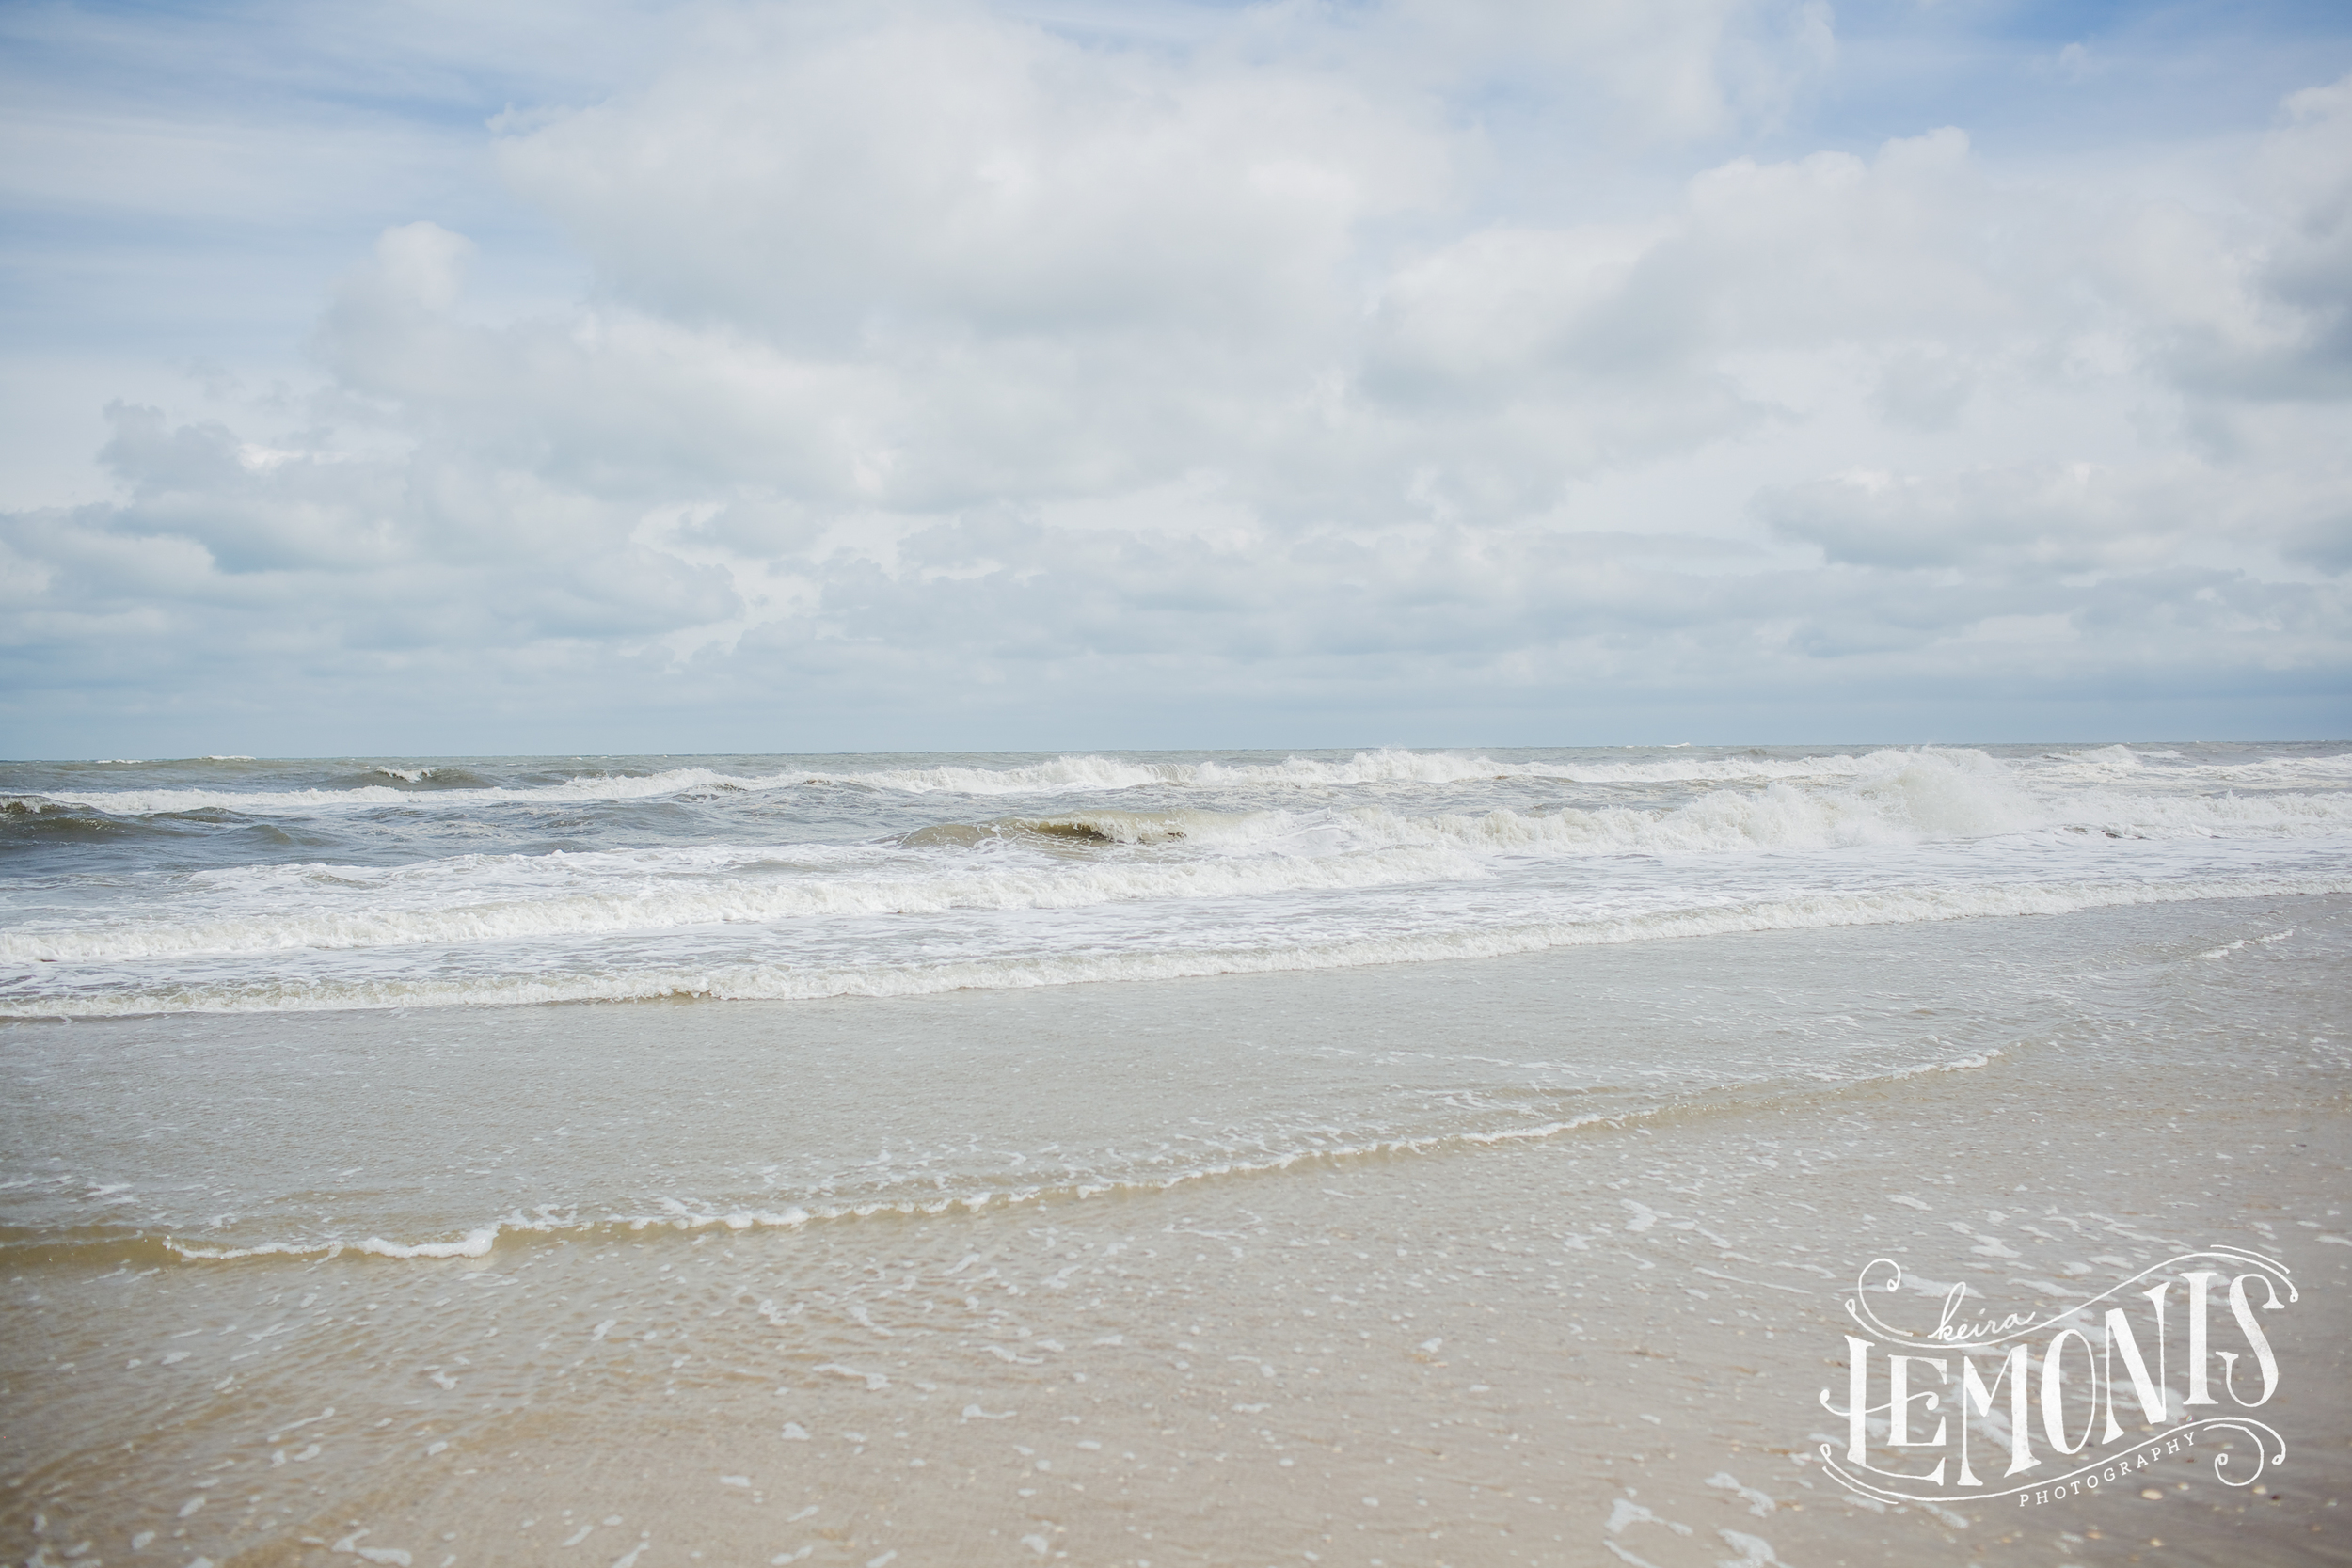 """""""The ocean stirs the heart, inspires the imagination and brings eternal joy to the soul"""" - Wyland"""